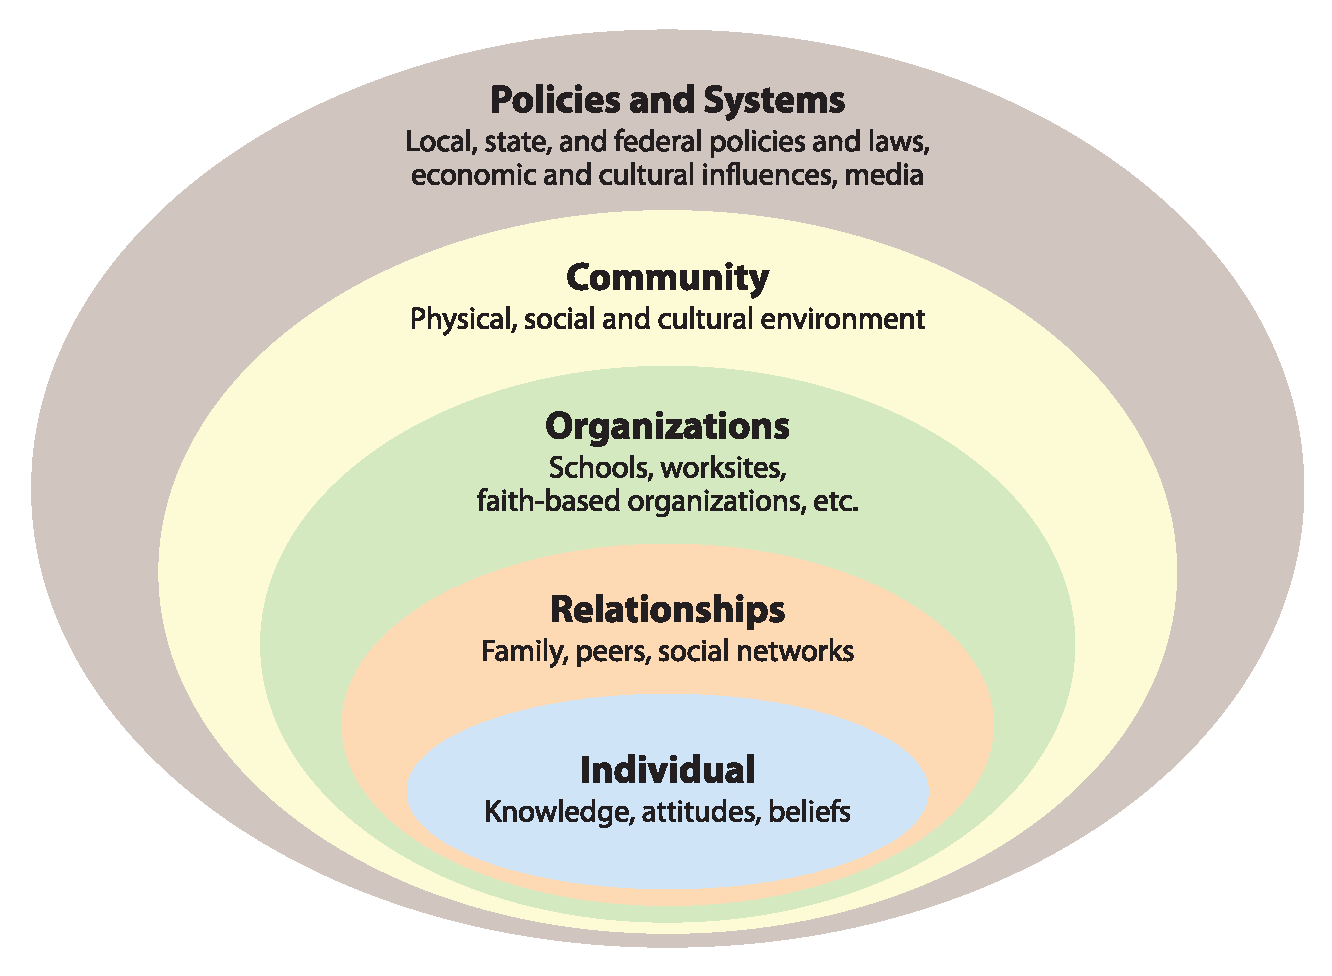 Vermont Prevention Model showing nested circles. From the inner circle out is Individual, Relationships, Organizations, Community, and Policies and Systems